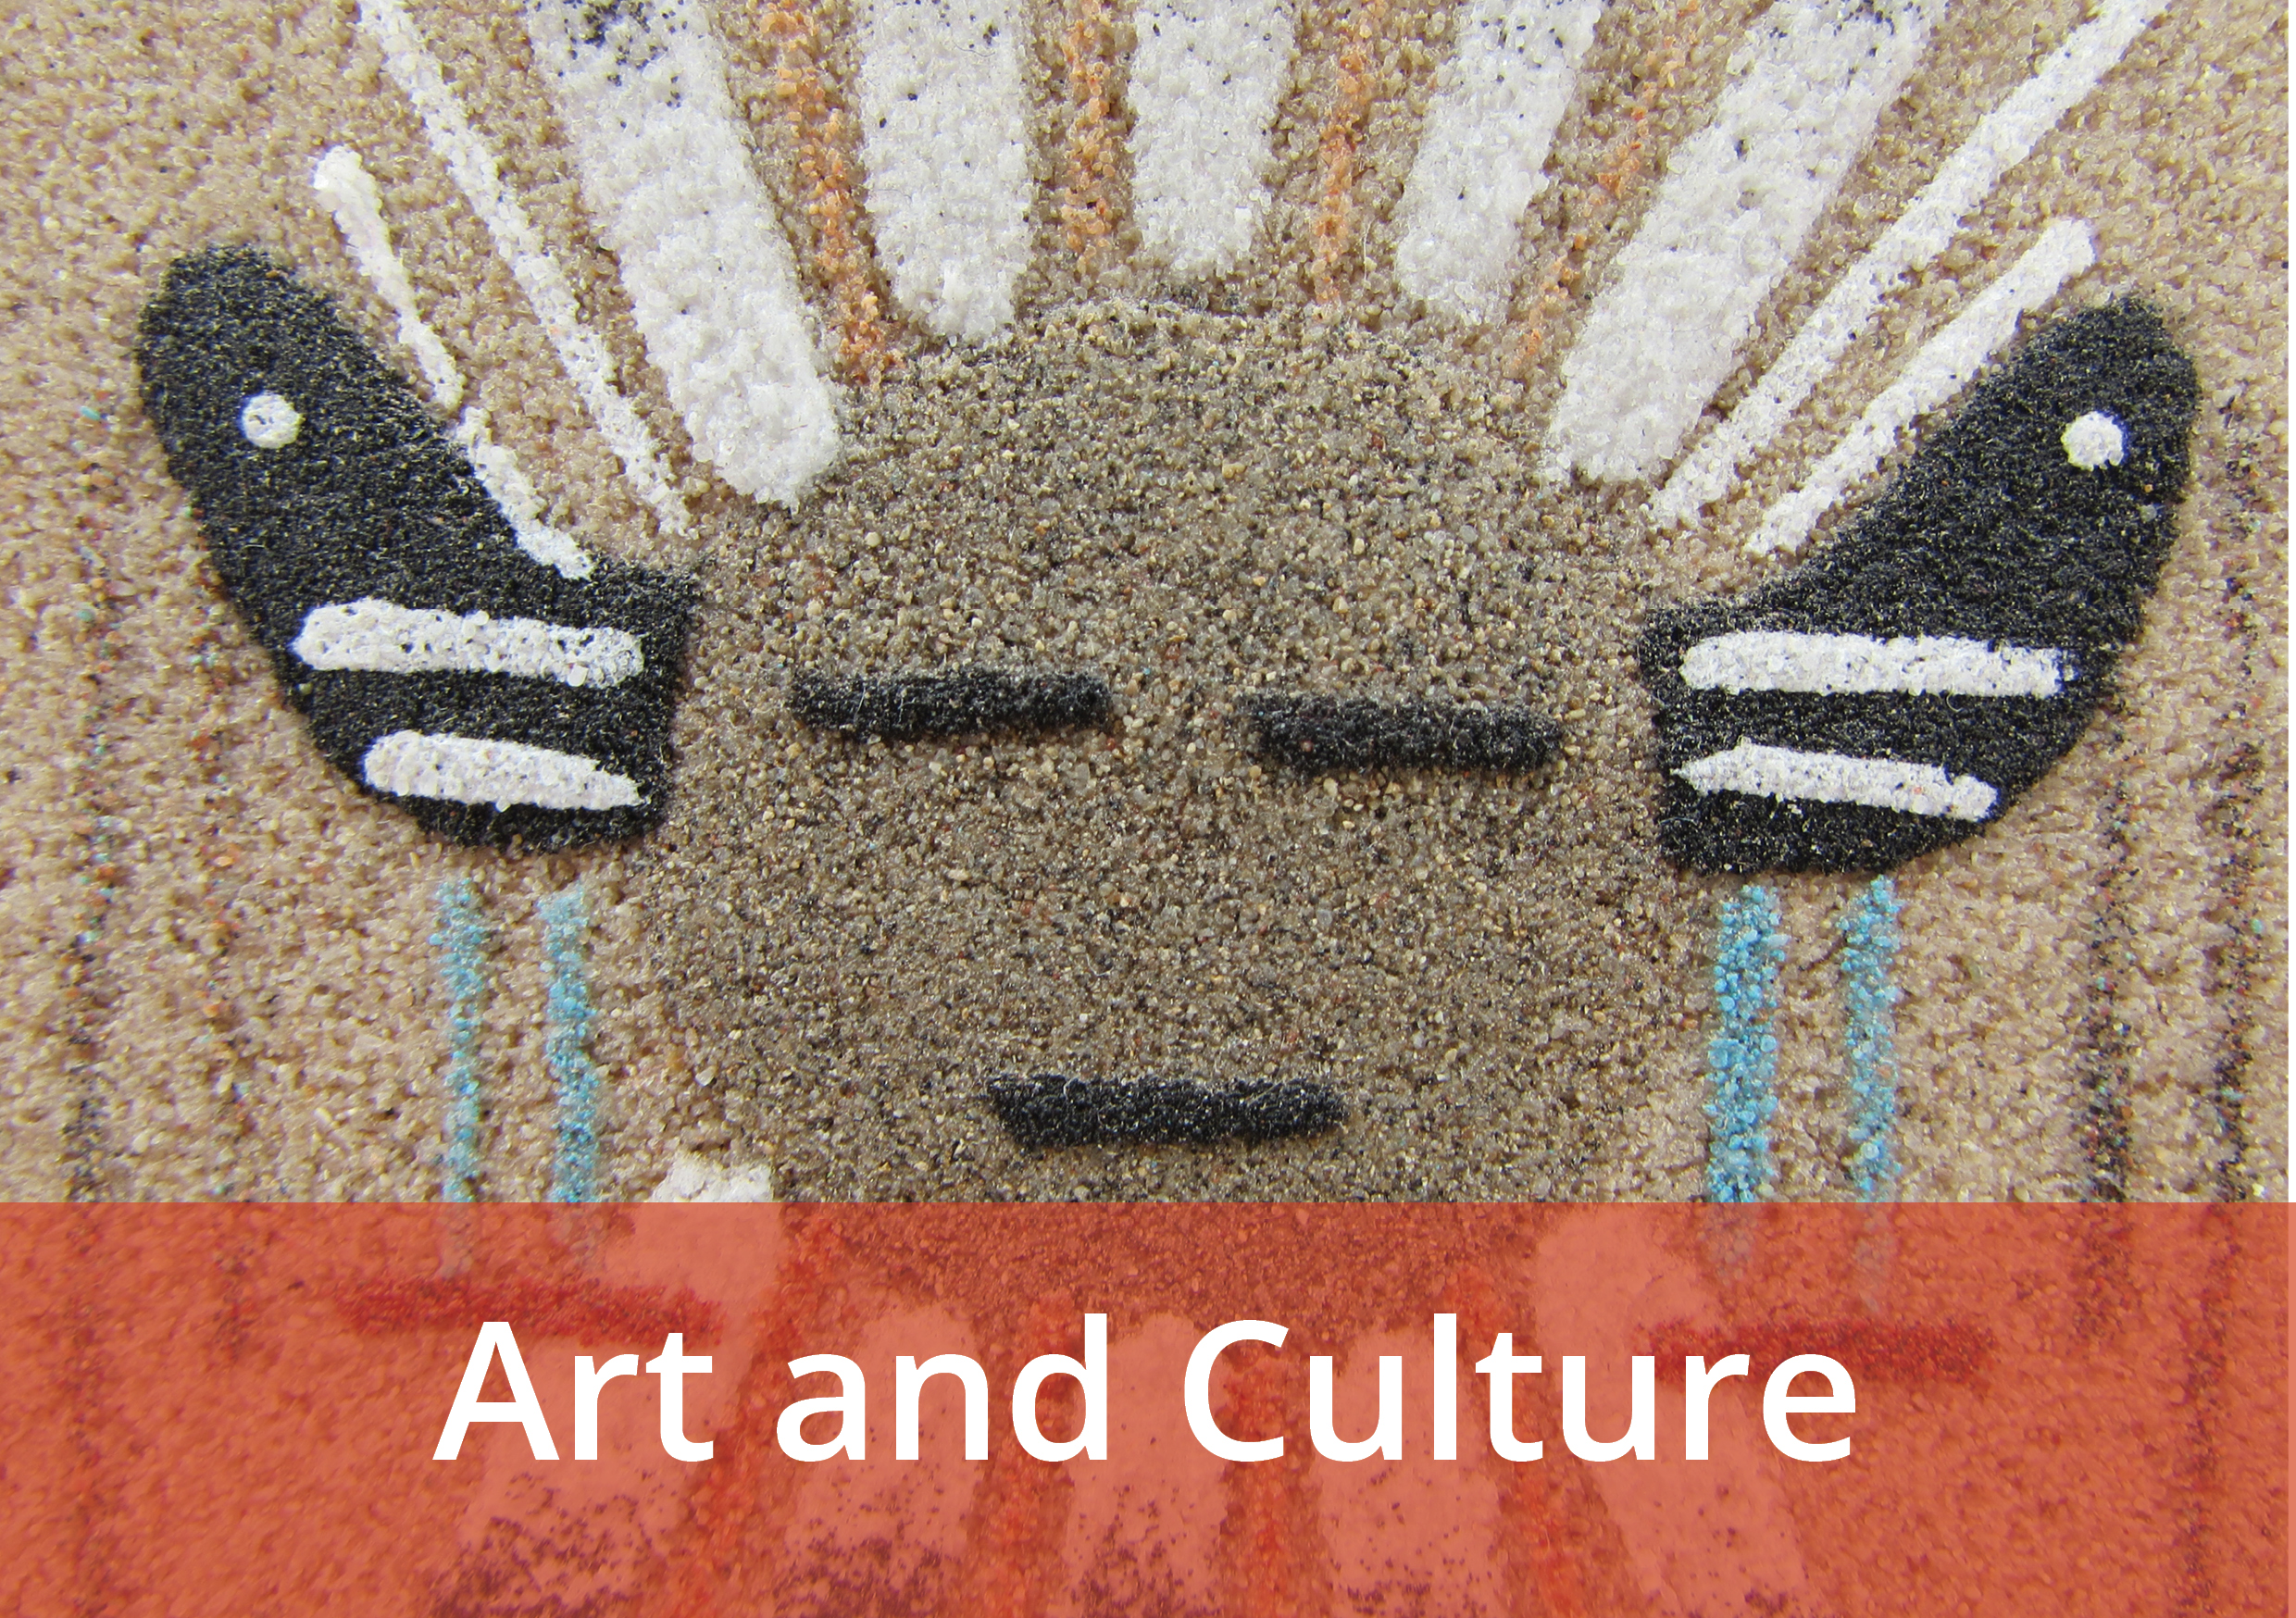 Image gateway to Art and Culture